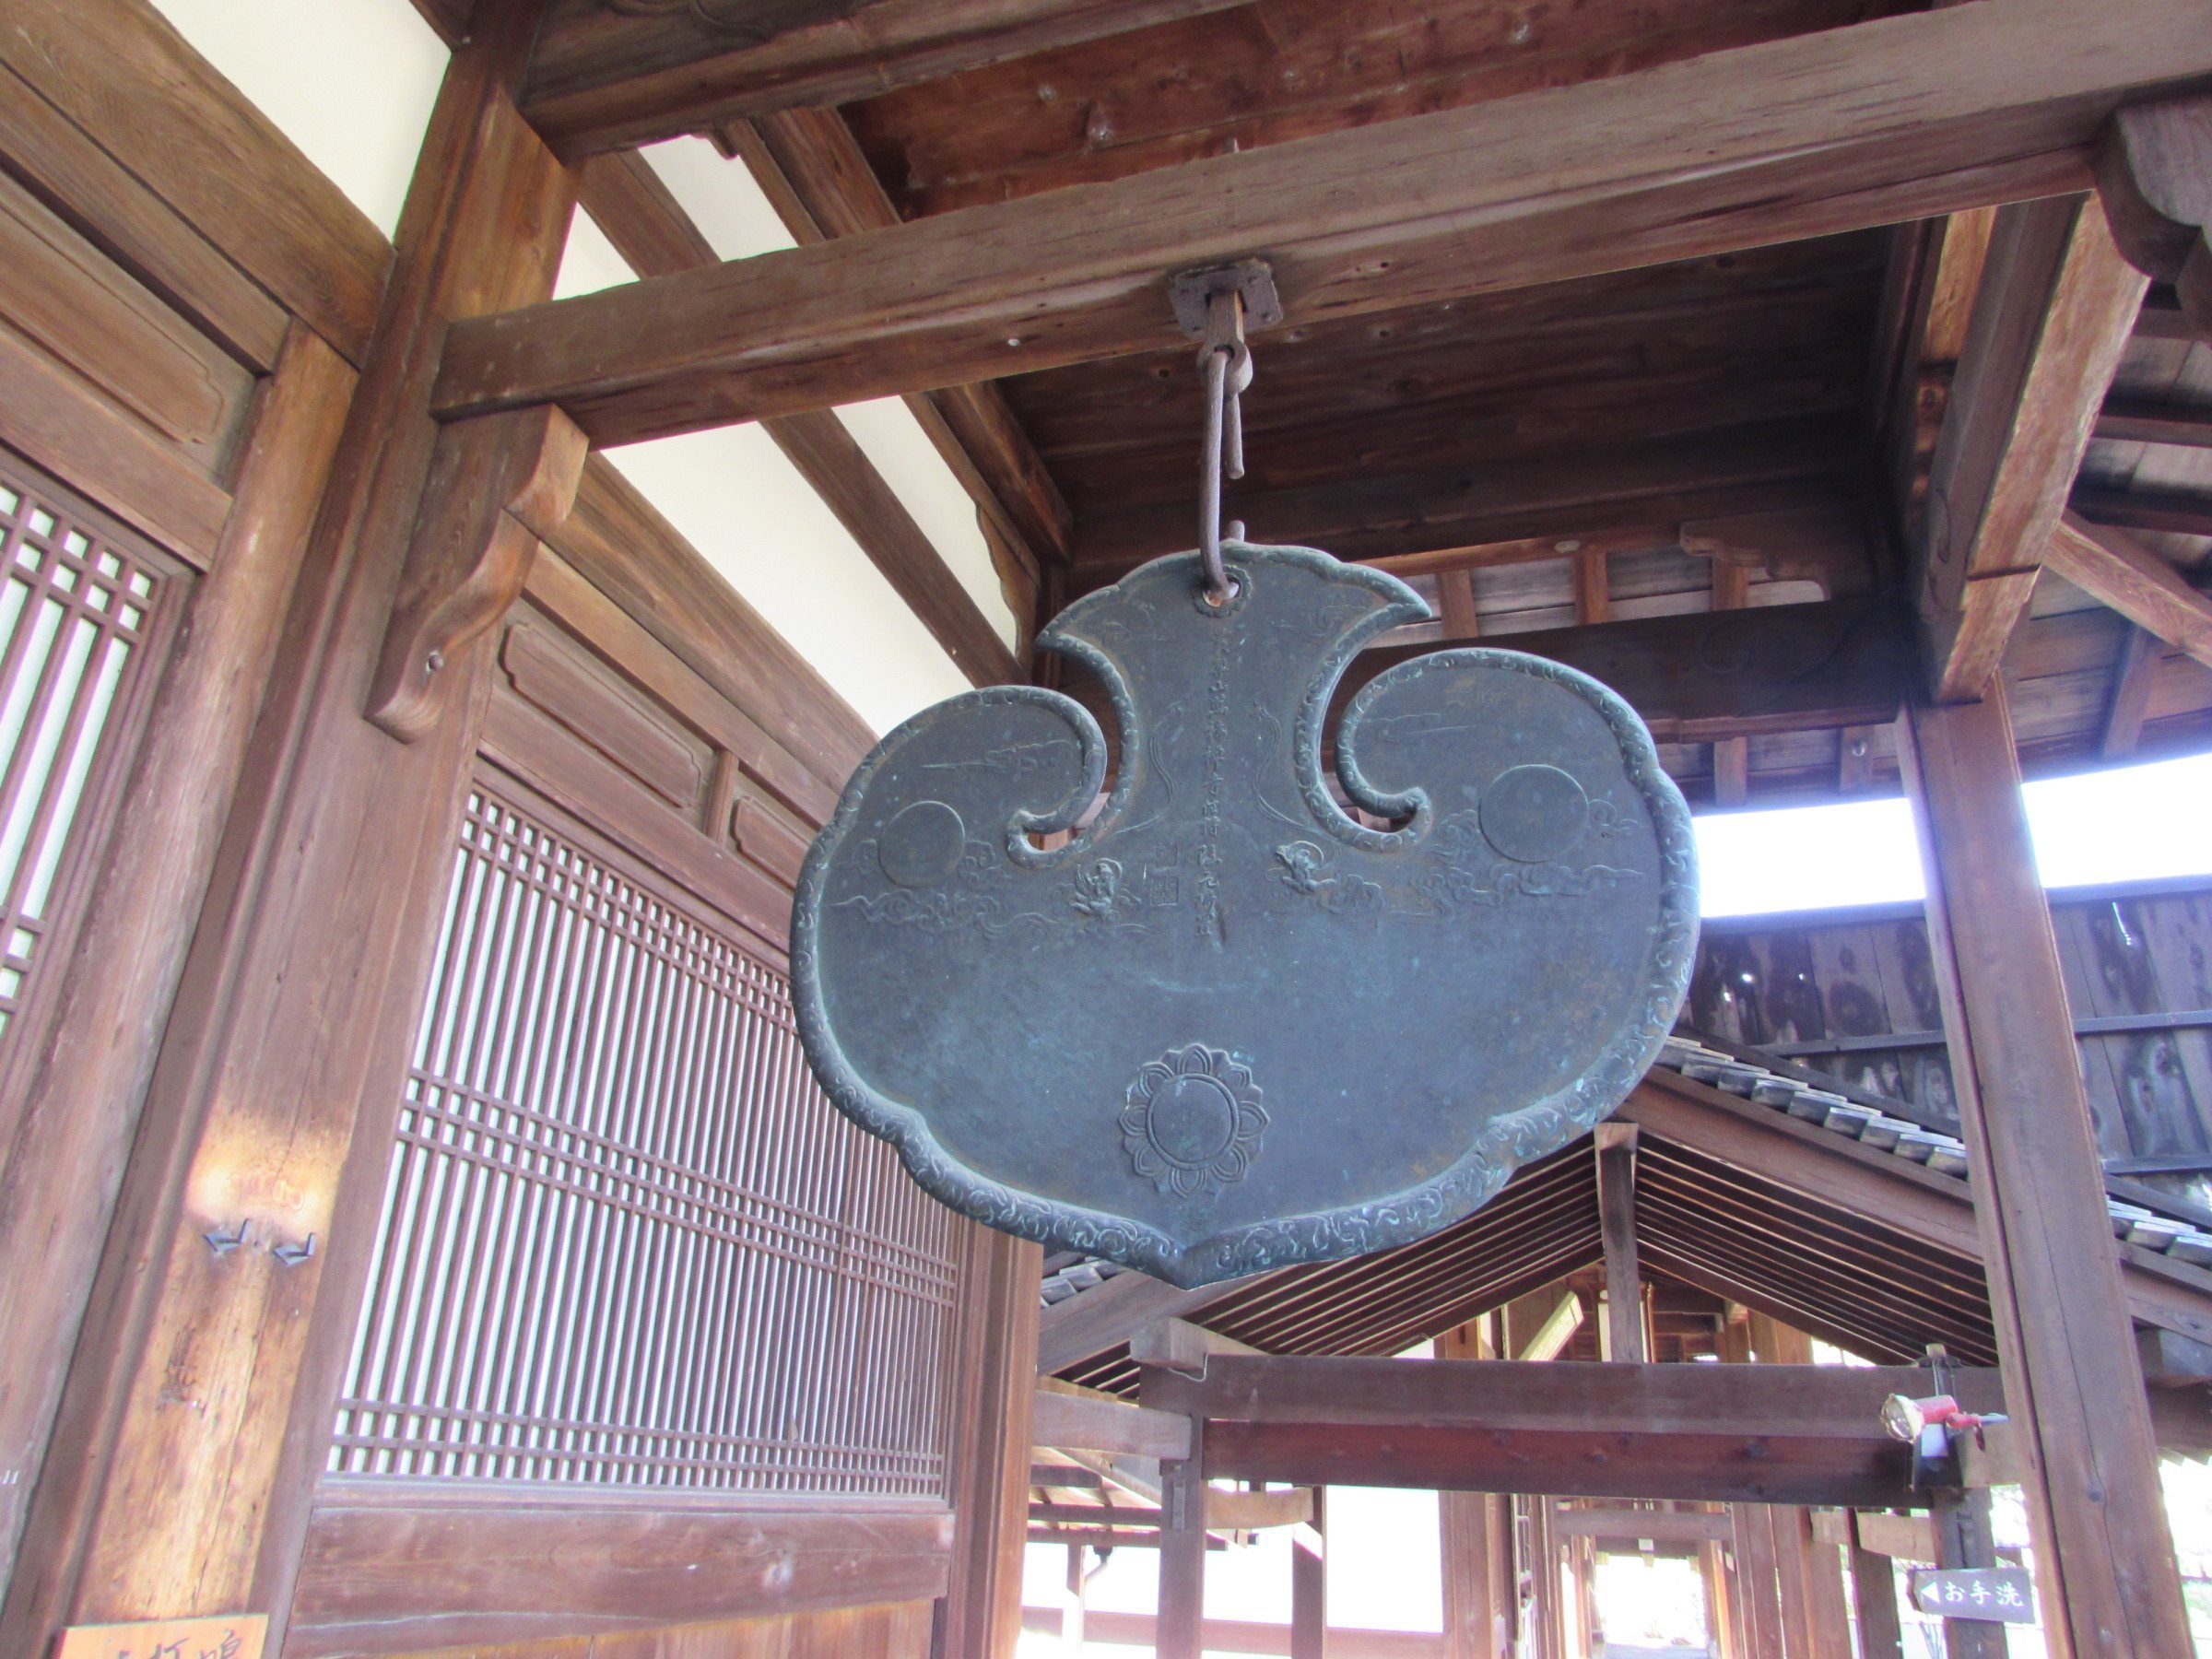 Dotted around the complex you will also come across various instruments which are used to regulate the daily schedule. This is the 'Umpan', or 'Cloud Plate'. It's rung at a variety of times during the day, but is primarily used to announce mealtimes, therefore you will usually find it outside the 'Kuri', the temple's kitchen.